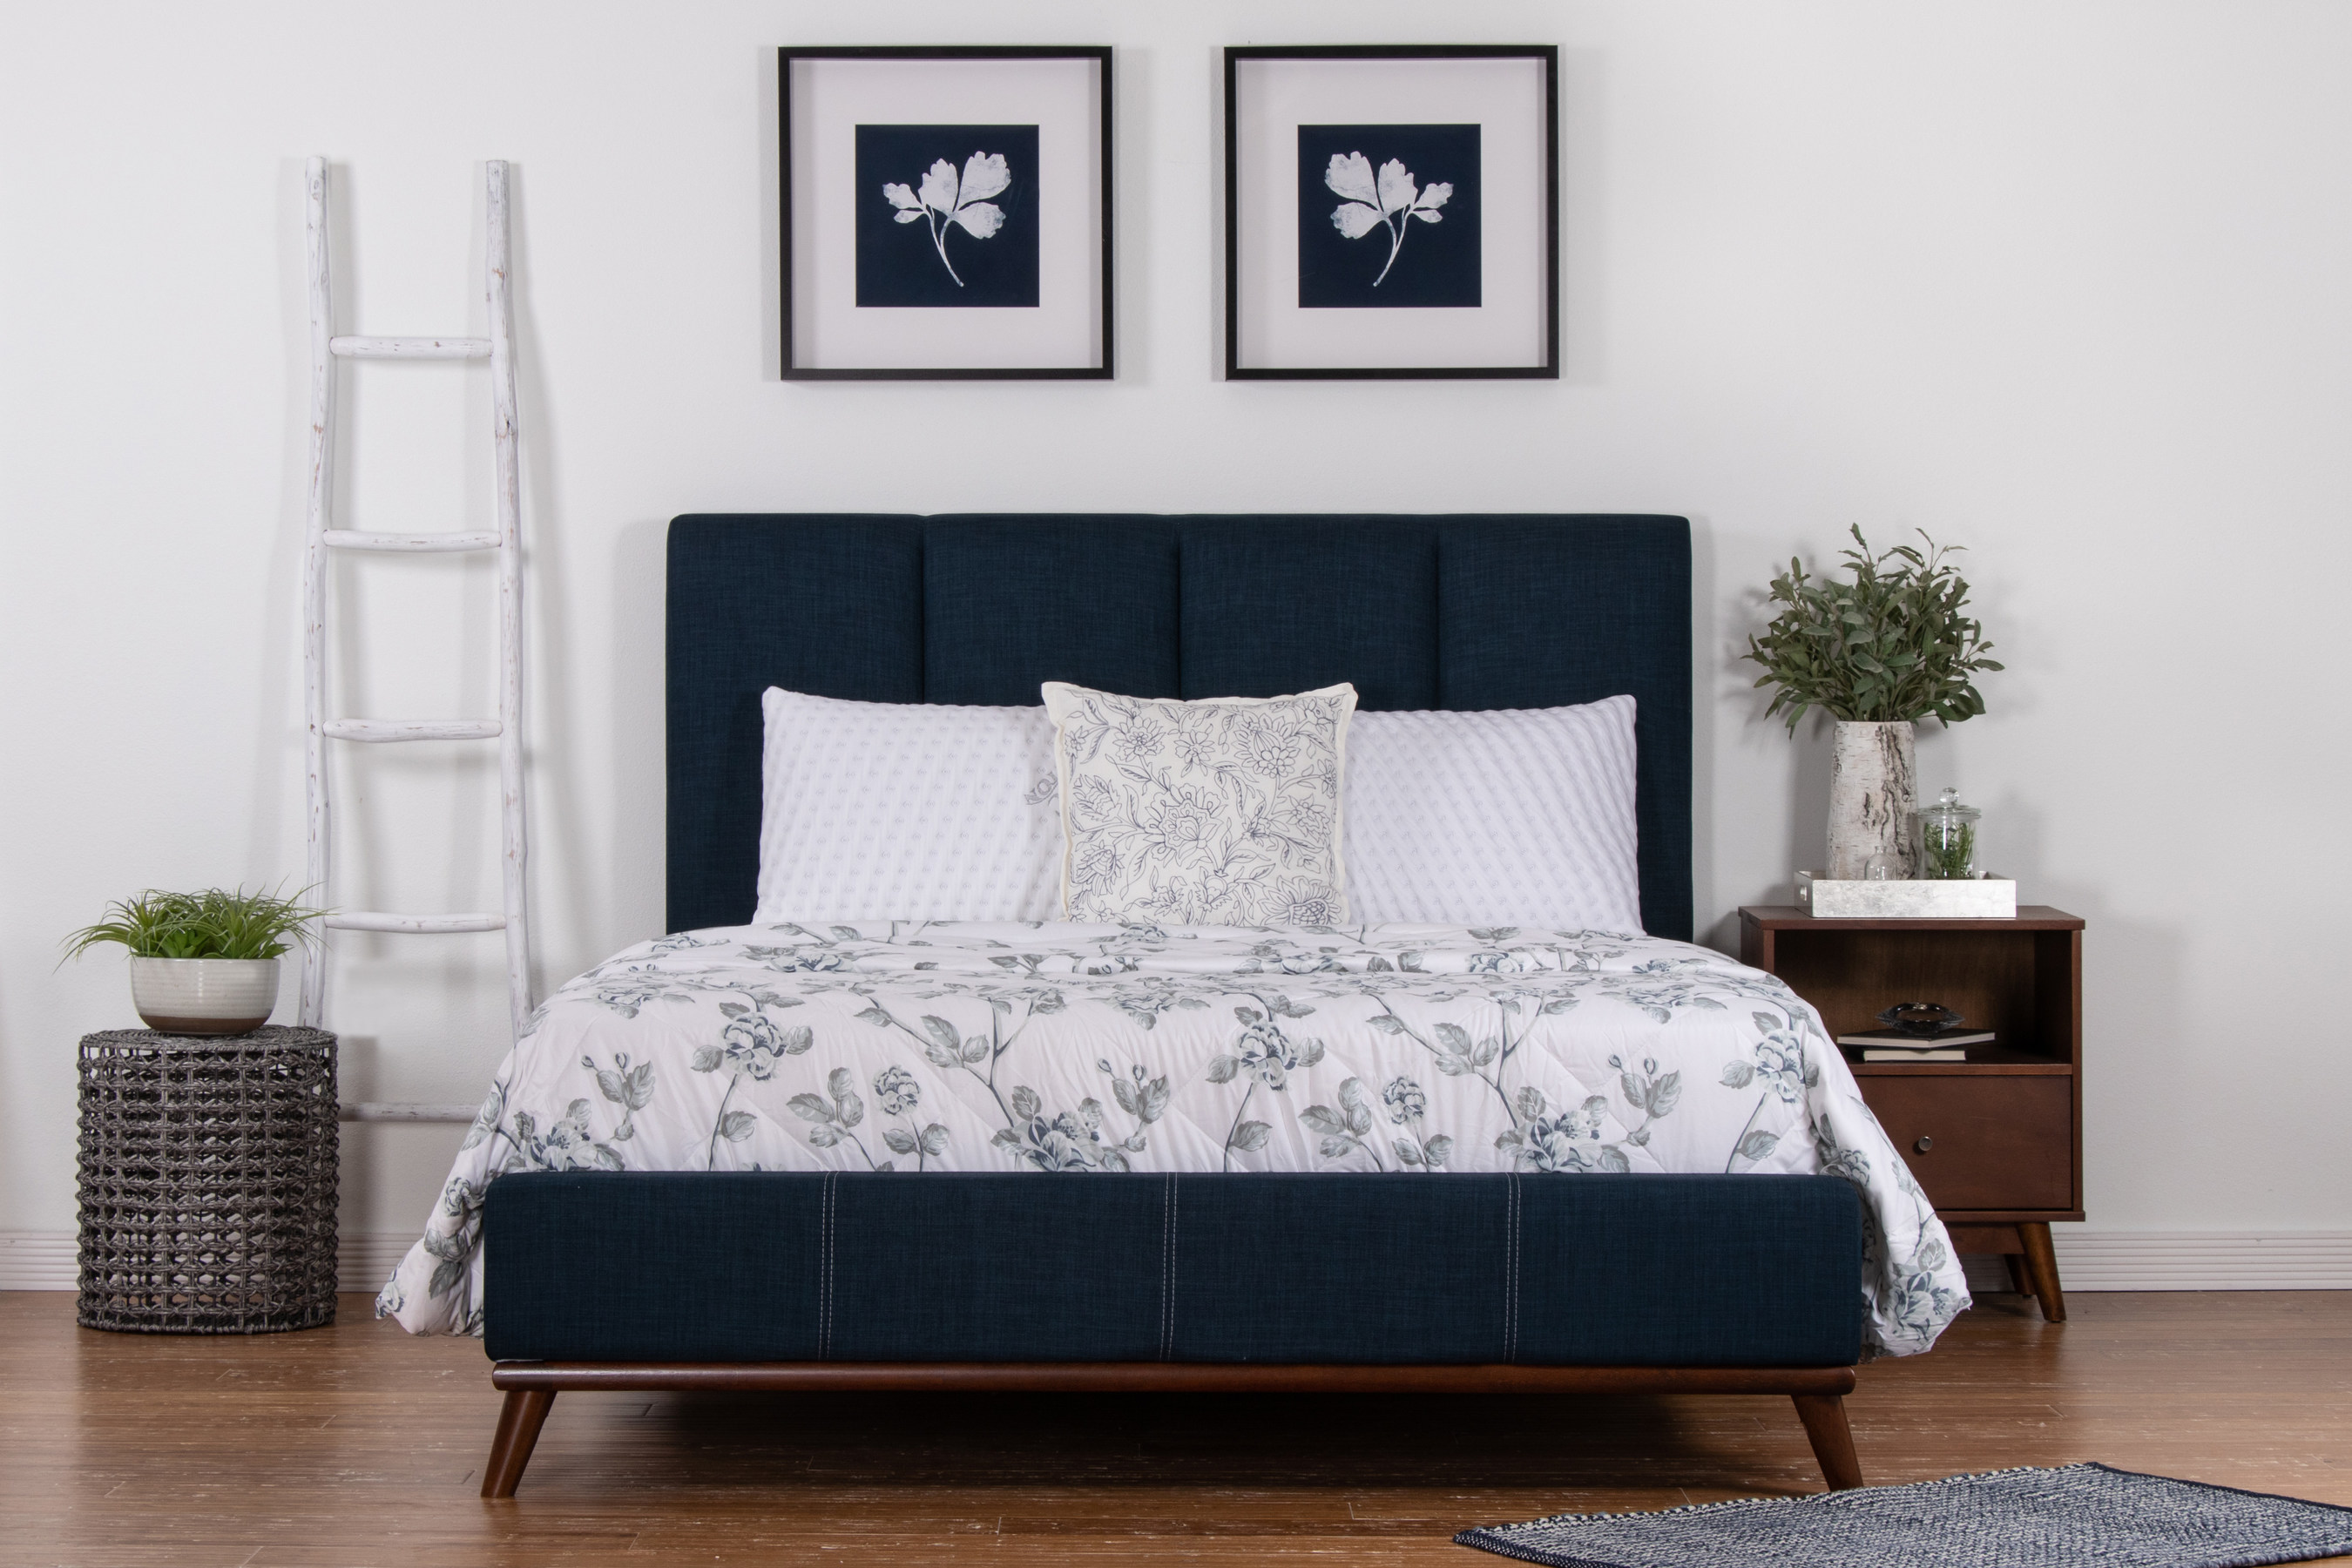 Brooklyn Bedding pillows